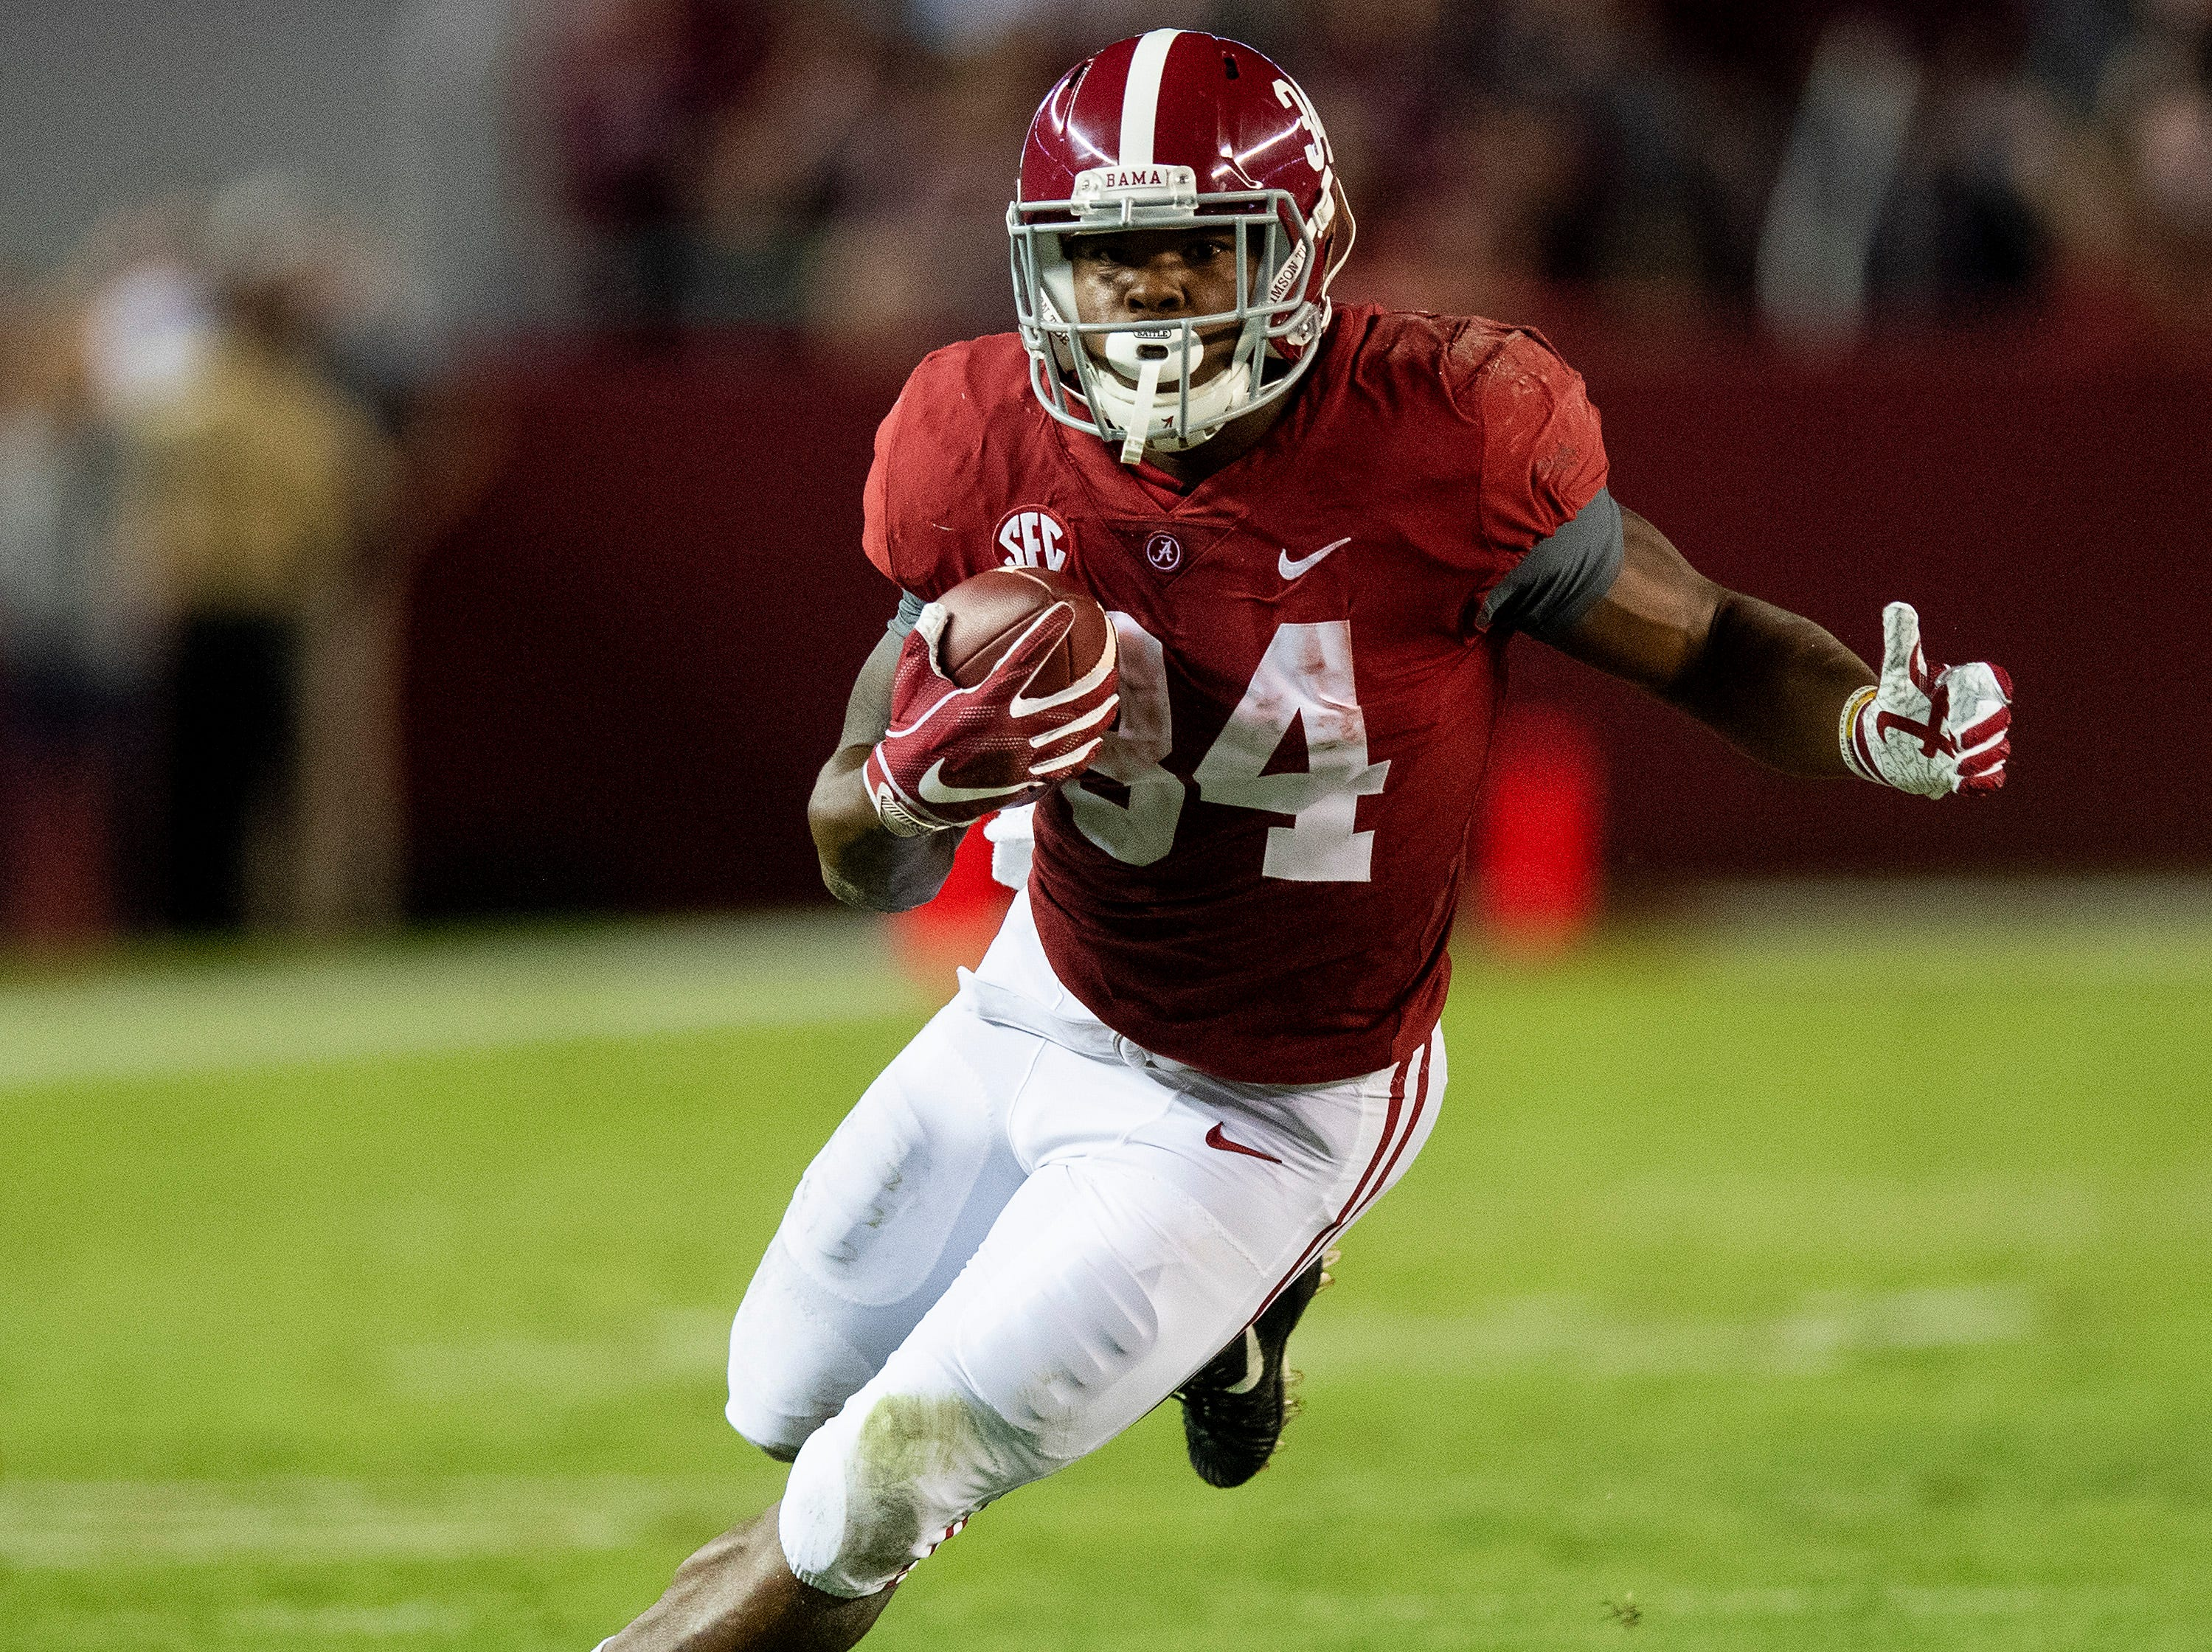 Alabama running back Damien Harris (34) carries the ball against Missouri in first half action at Bryant Denny Stadium in Tuscaloosa, Ala., on Saturday October 13, 2018.